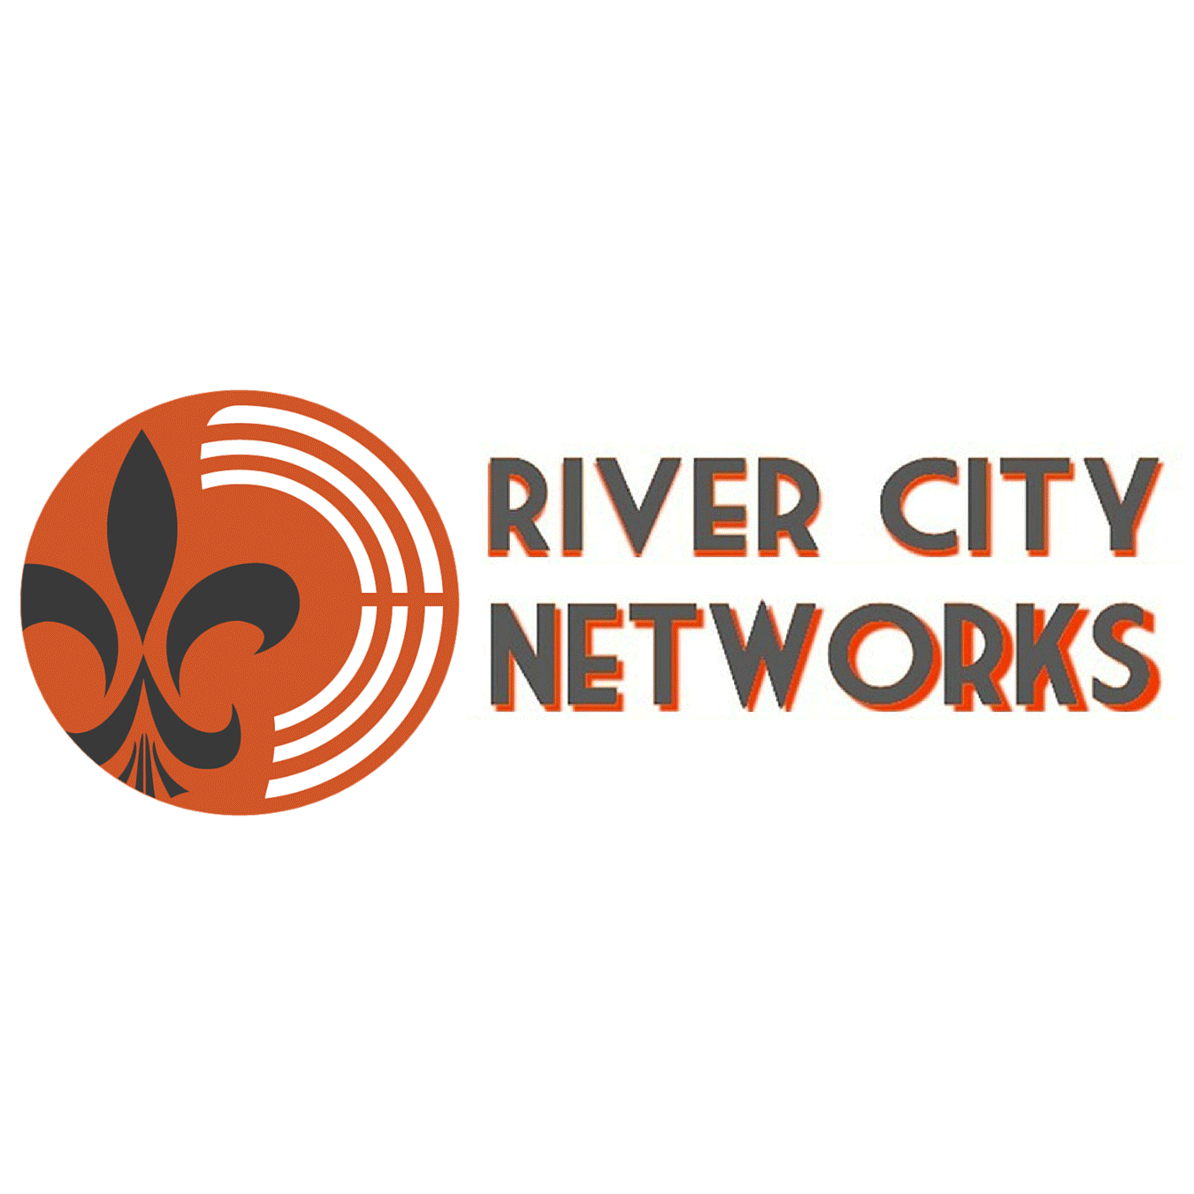 River City Networks